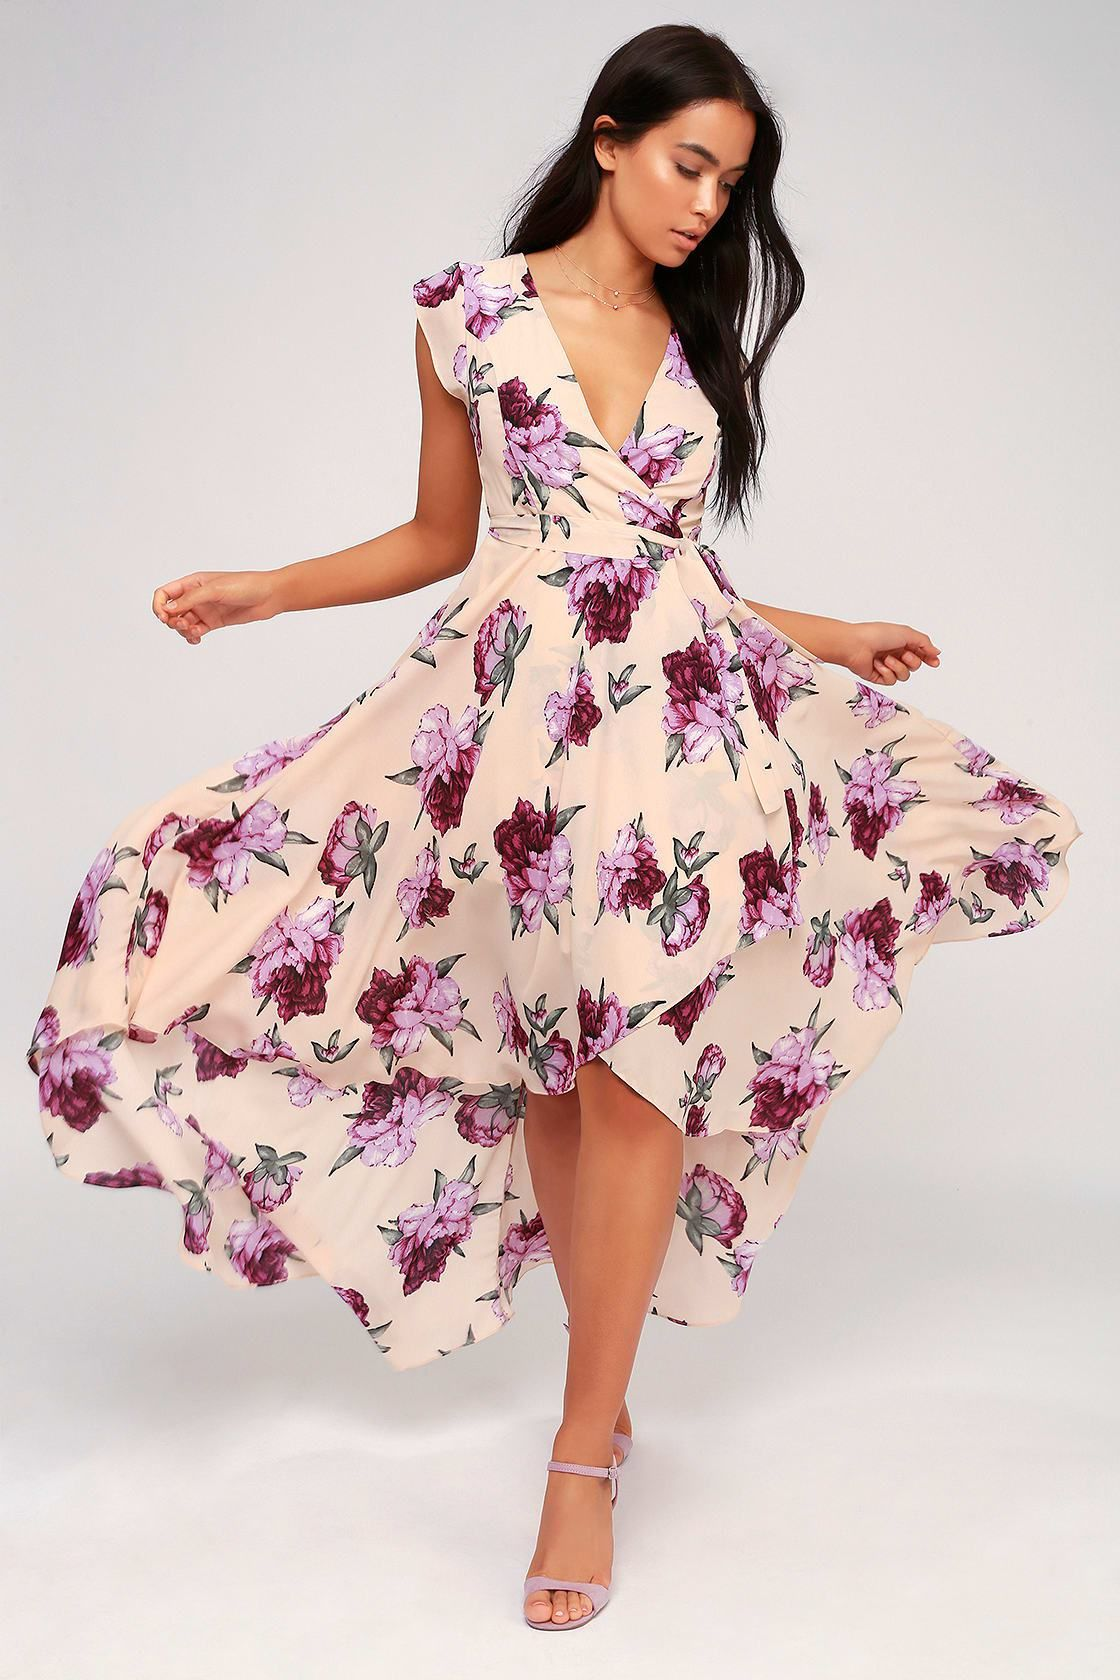 Wedding day guest dresses   More Gorgeous Wedding Guest Dresses  Wedding guest dresses